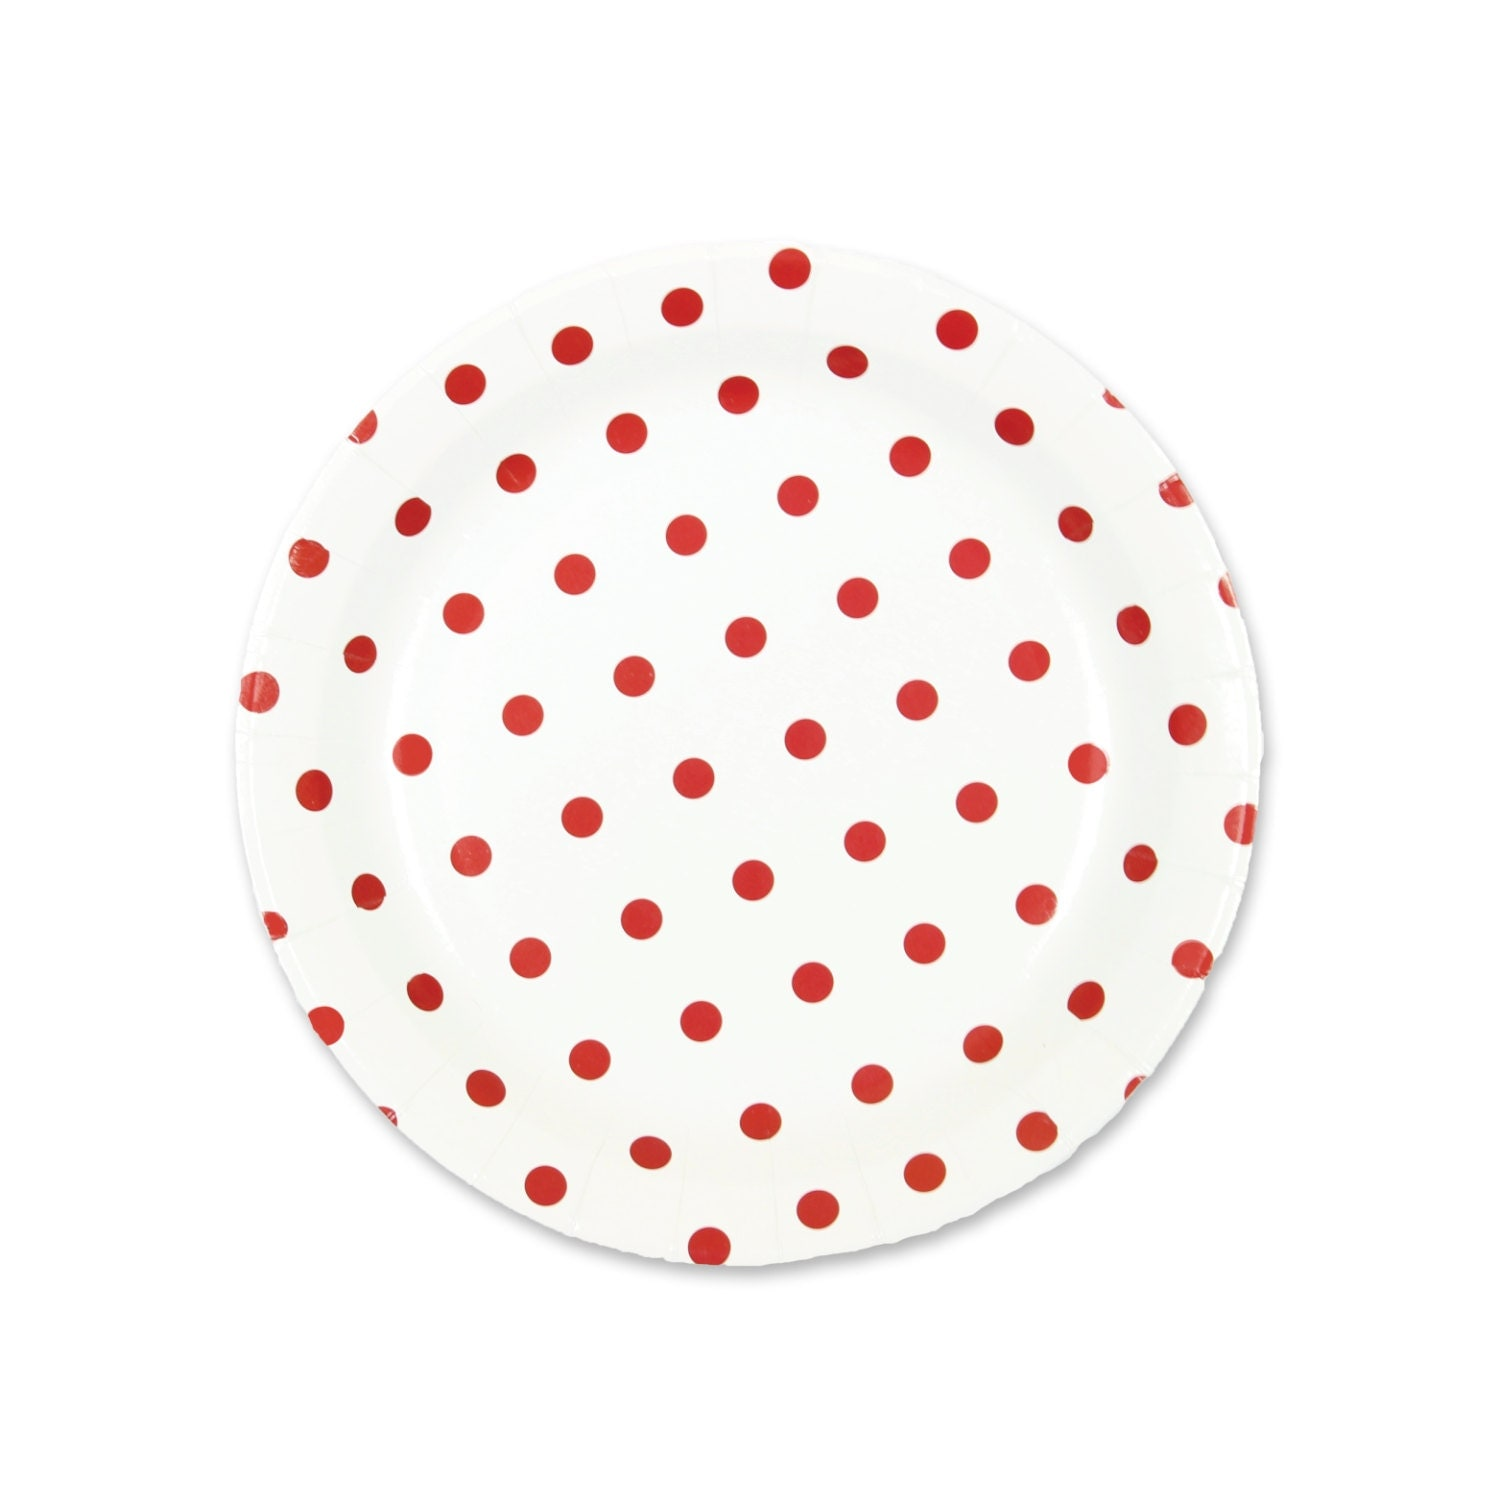 red polka dot paper plates Find product information, ratings and reviews for 8ct red & white polka dot dessert plate online on targetcom 10ct black & white polka dot paper straw.